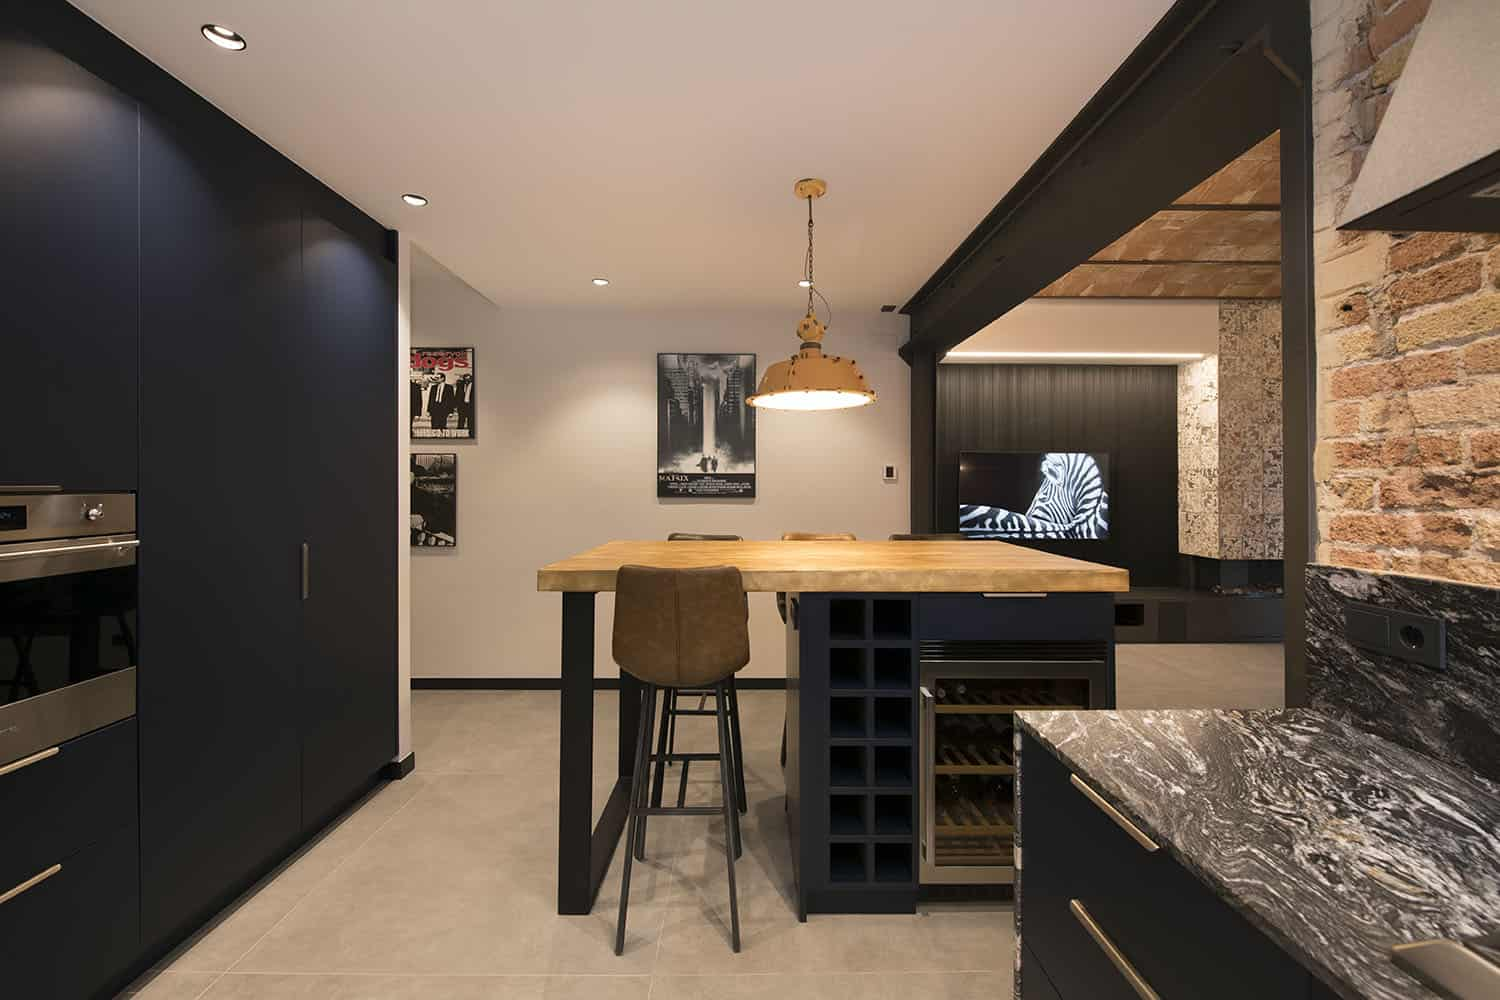 The kitchen island features wine storage, light stained butcherblock countertop and tall leather stools